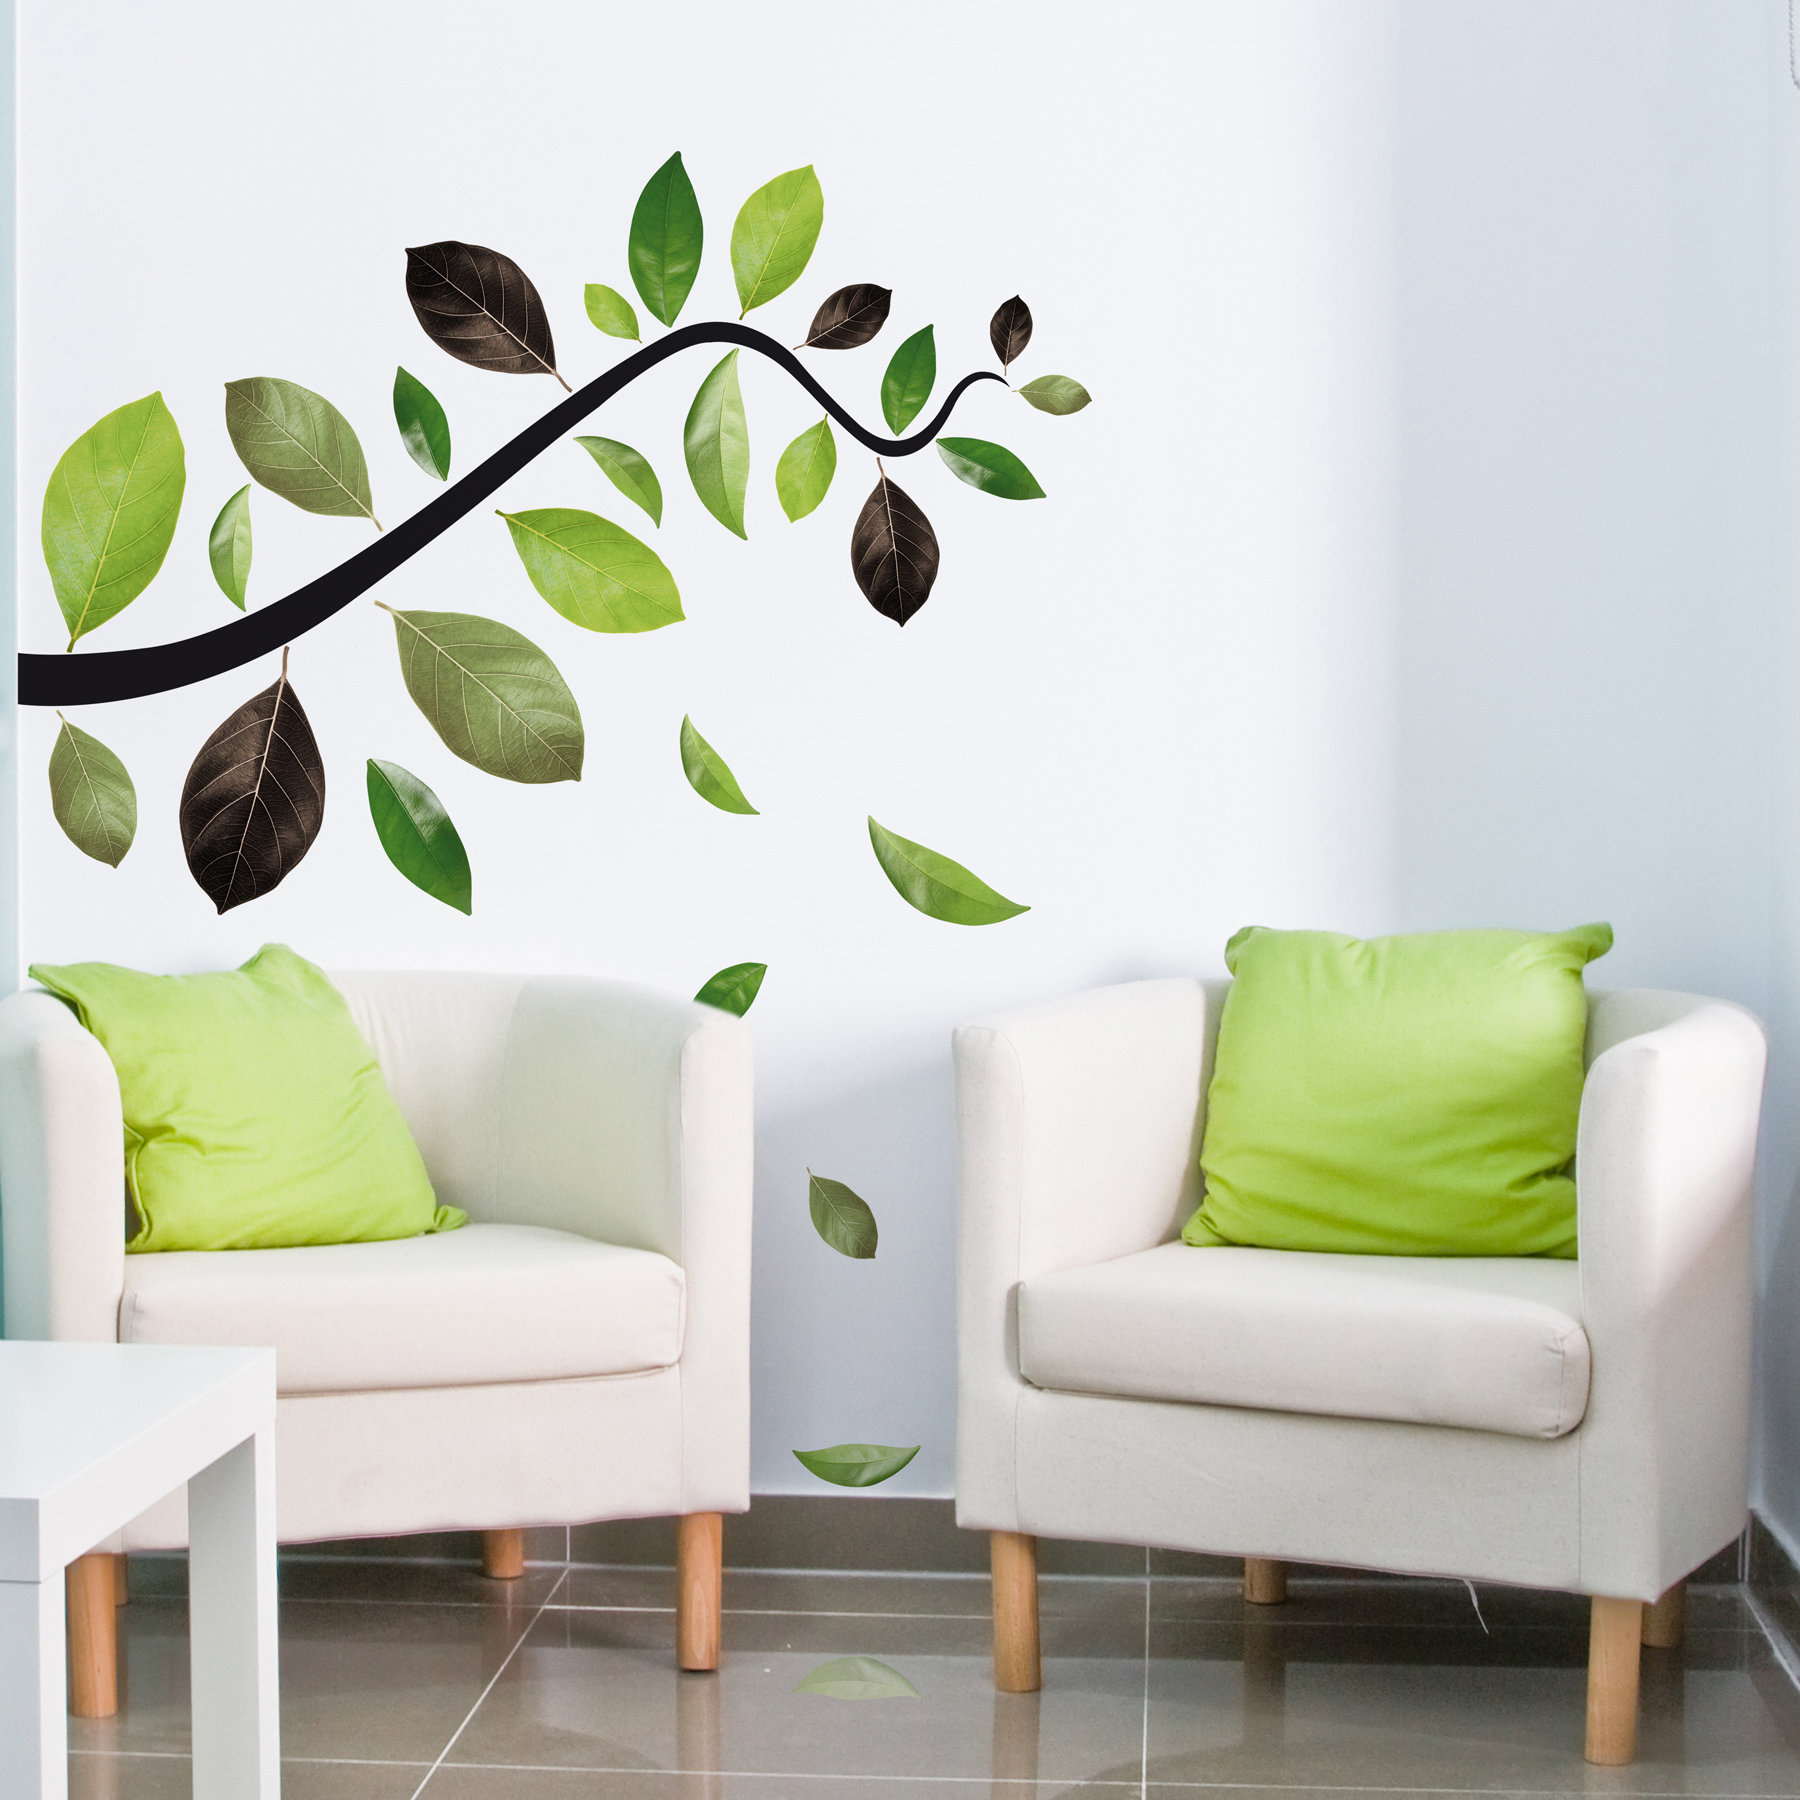 Flowing Leaves Wall Decor Inside Most Recent Wallpops! Home Decor Line Falling Leaves Wall Decal (View 9 of 20)